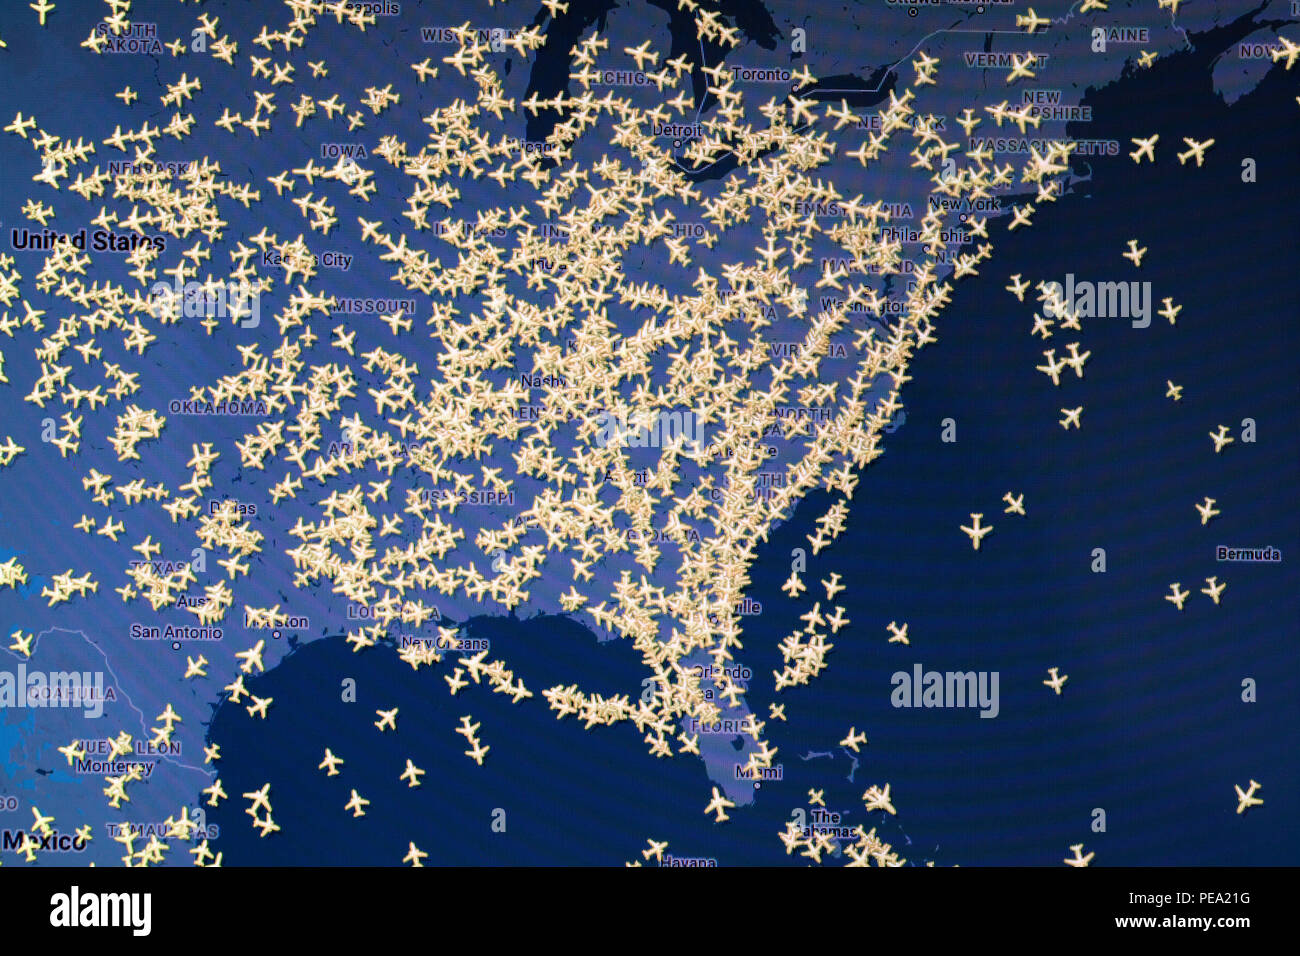 Commercial flight tracking map of USA - Stock Image